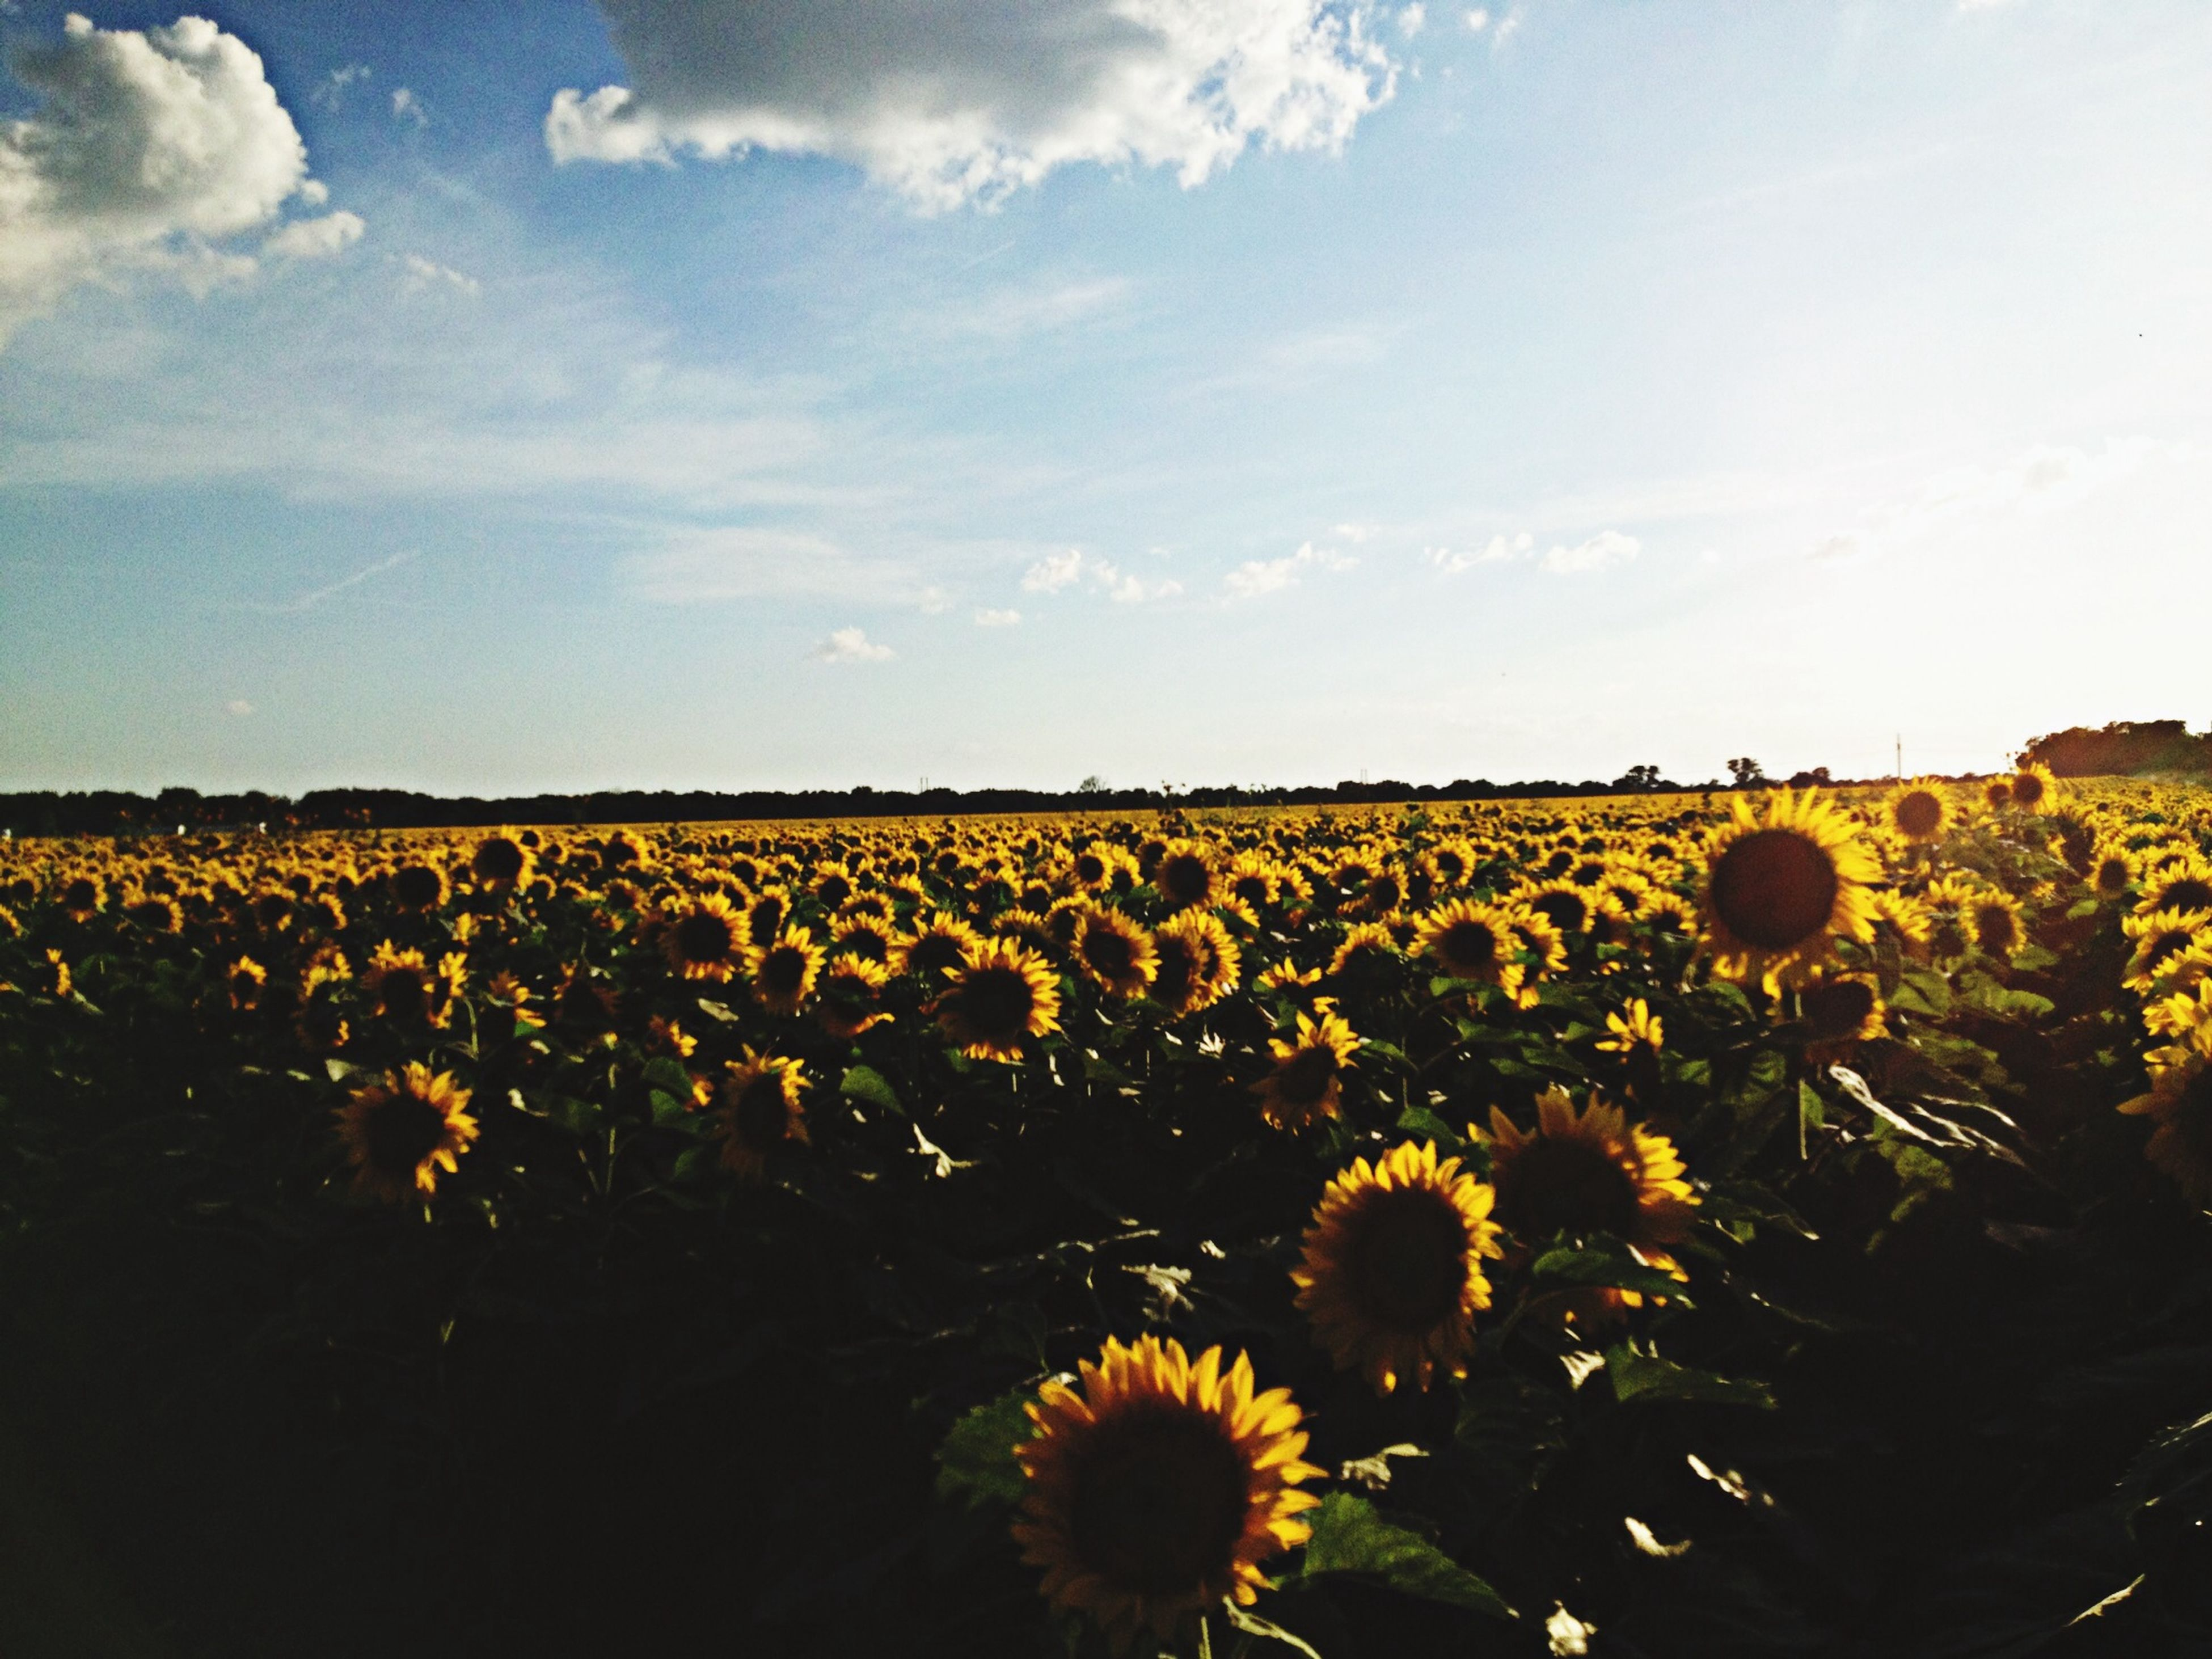 flower, yellow, growth, beauty in nature, sky, rural scene, freshness, agriculture, field, sunflower, nature, plant, fragility, landscape, blooming, petal, abundance, cloud - sky, tranquility, tranquil scene